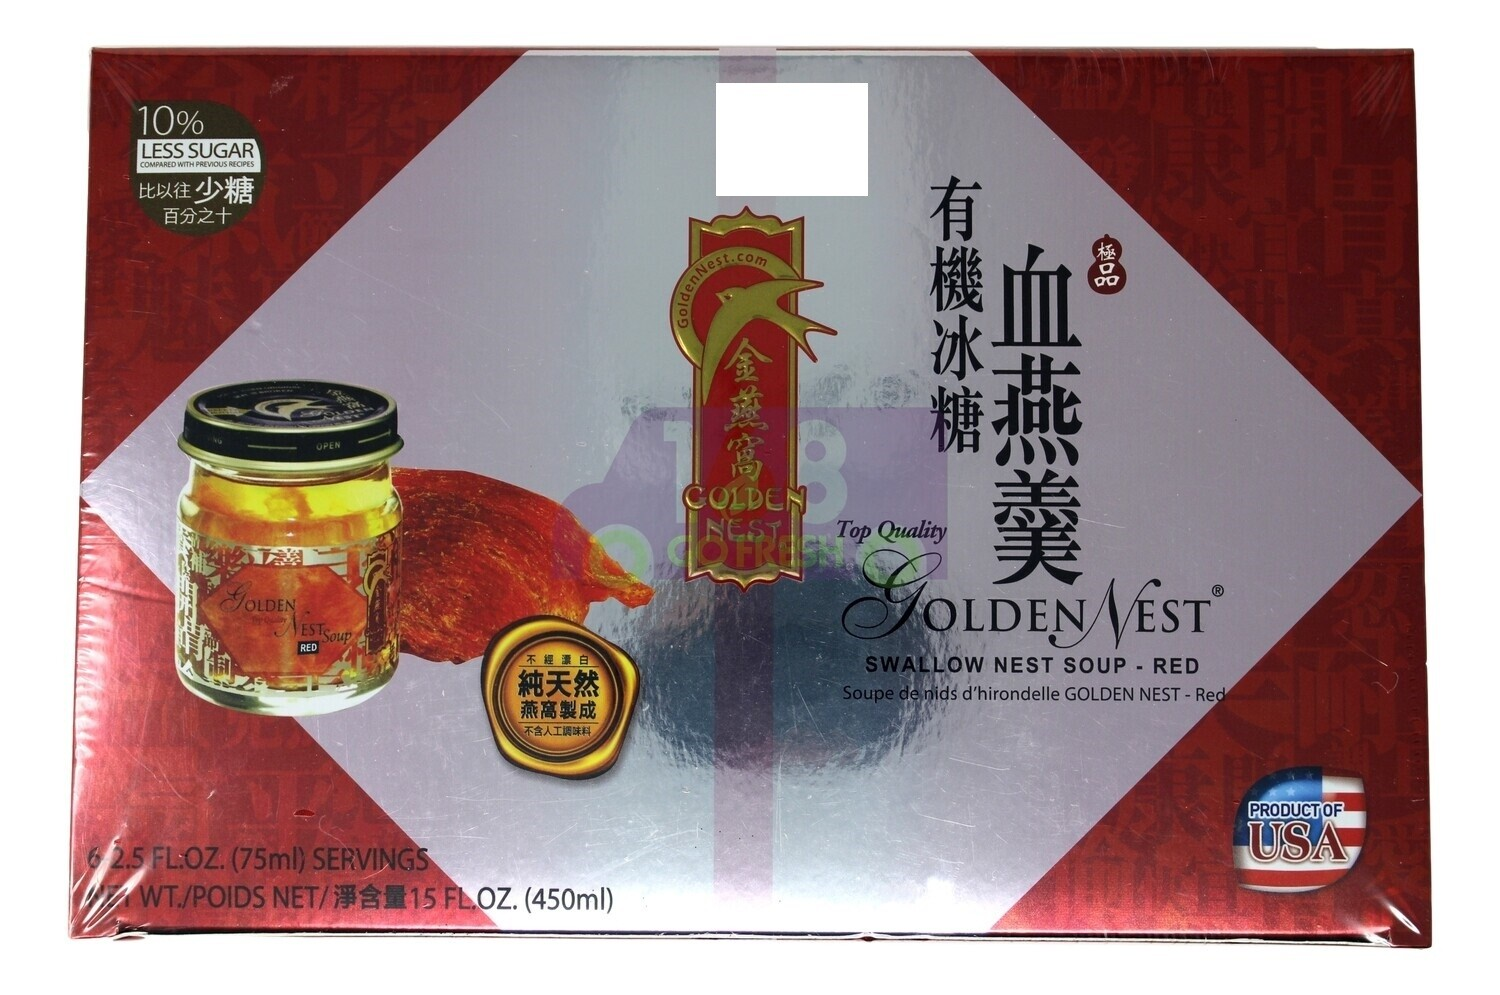 GOLDE NEST Top Quality Swallow Nest Soup-Red 6Bottles/450ml 金燕窝 极品有机冰糖血燕窝羹 6瓶入/450ml